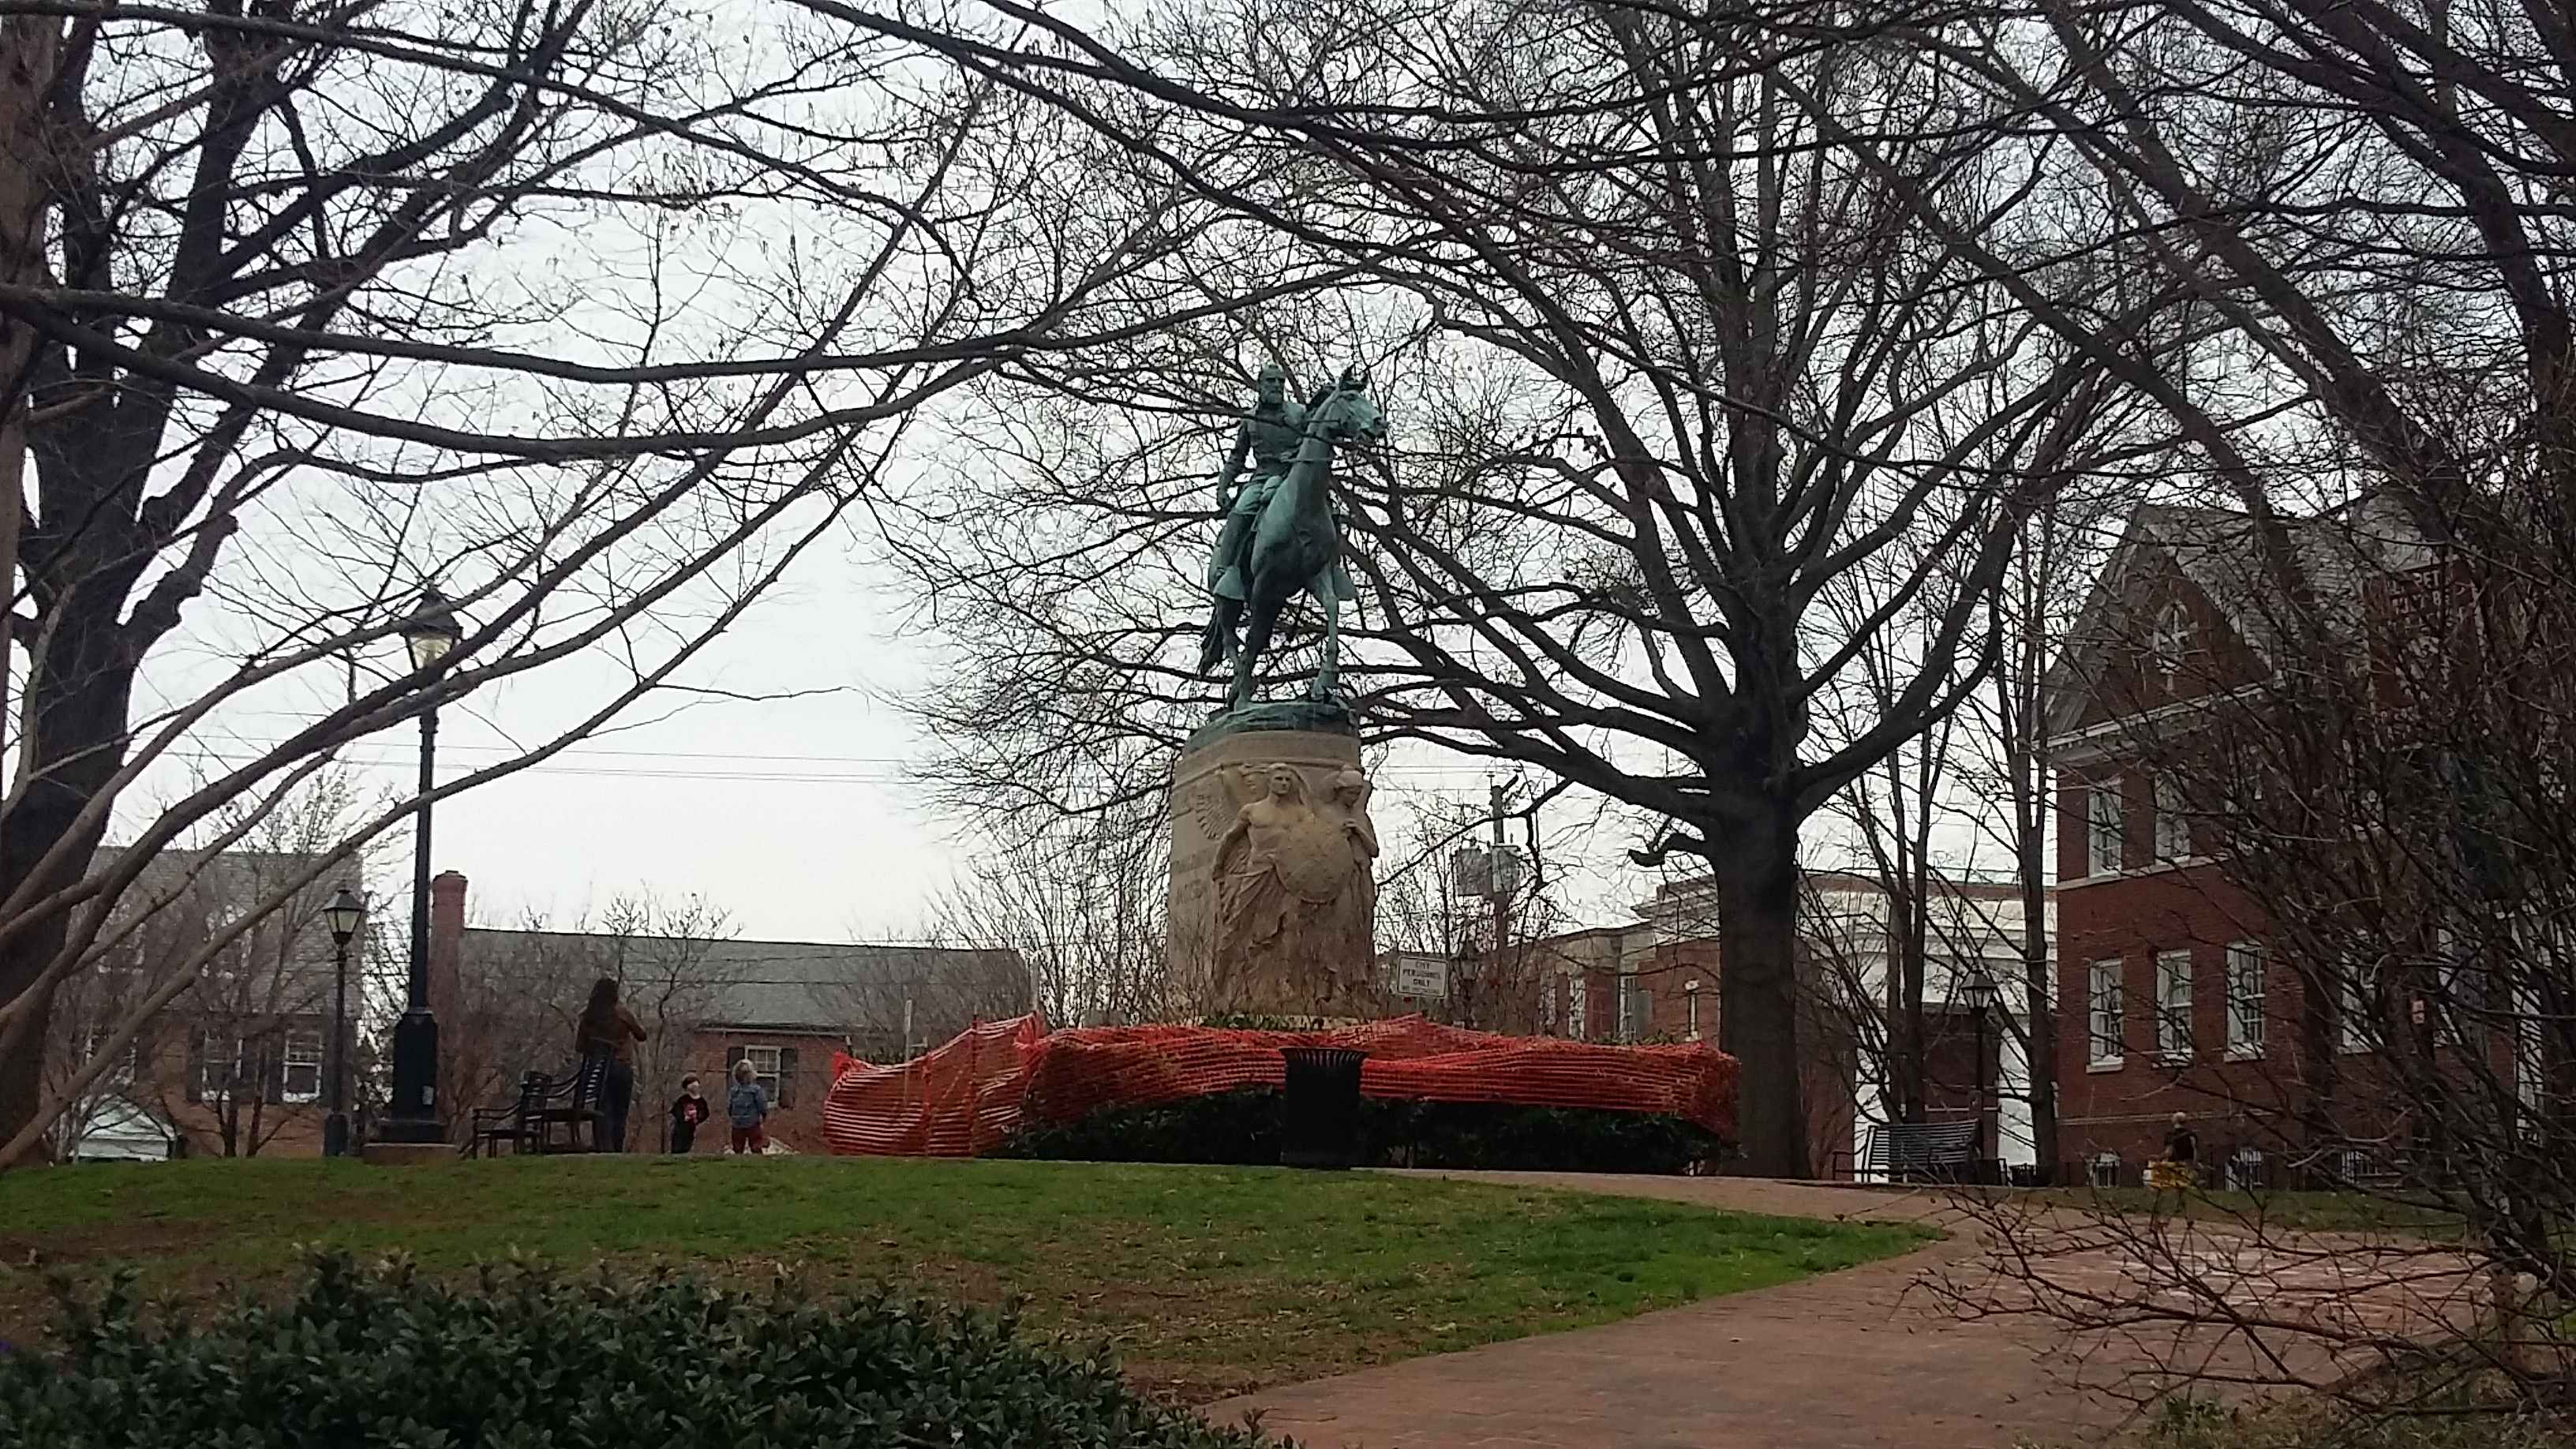 City removes statue shrouds following Tuesday hearing